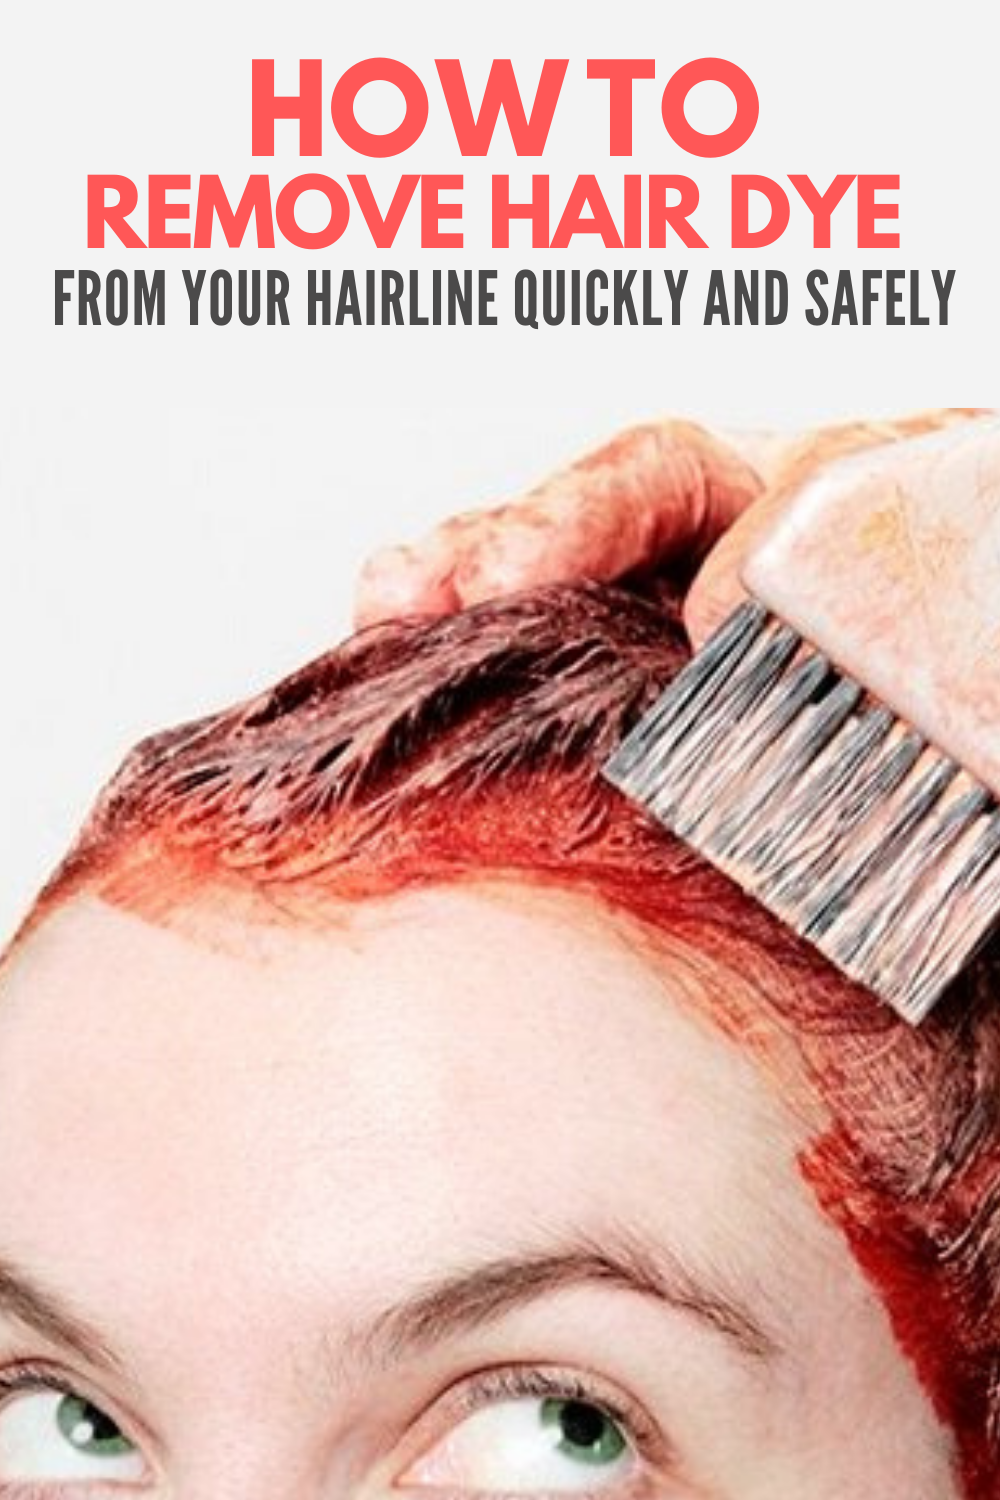 How To Remove Hair Dye From Skin Without Rubbing Alcohol In 2020 Hair Dye Removal Dyed Hair Hair Removal